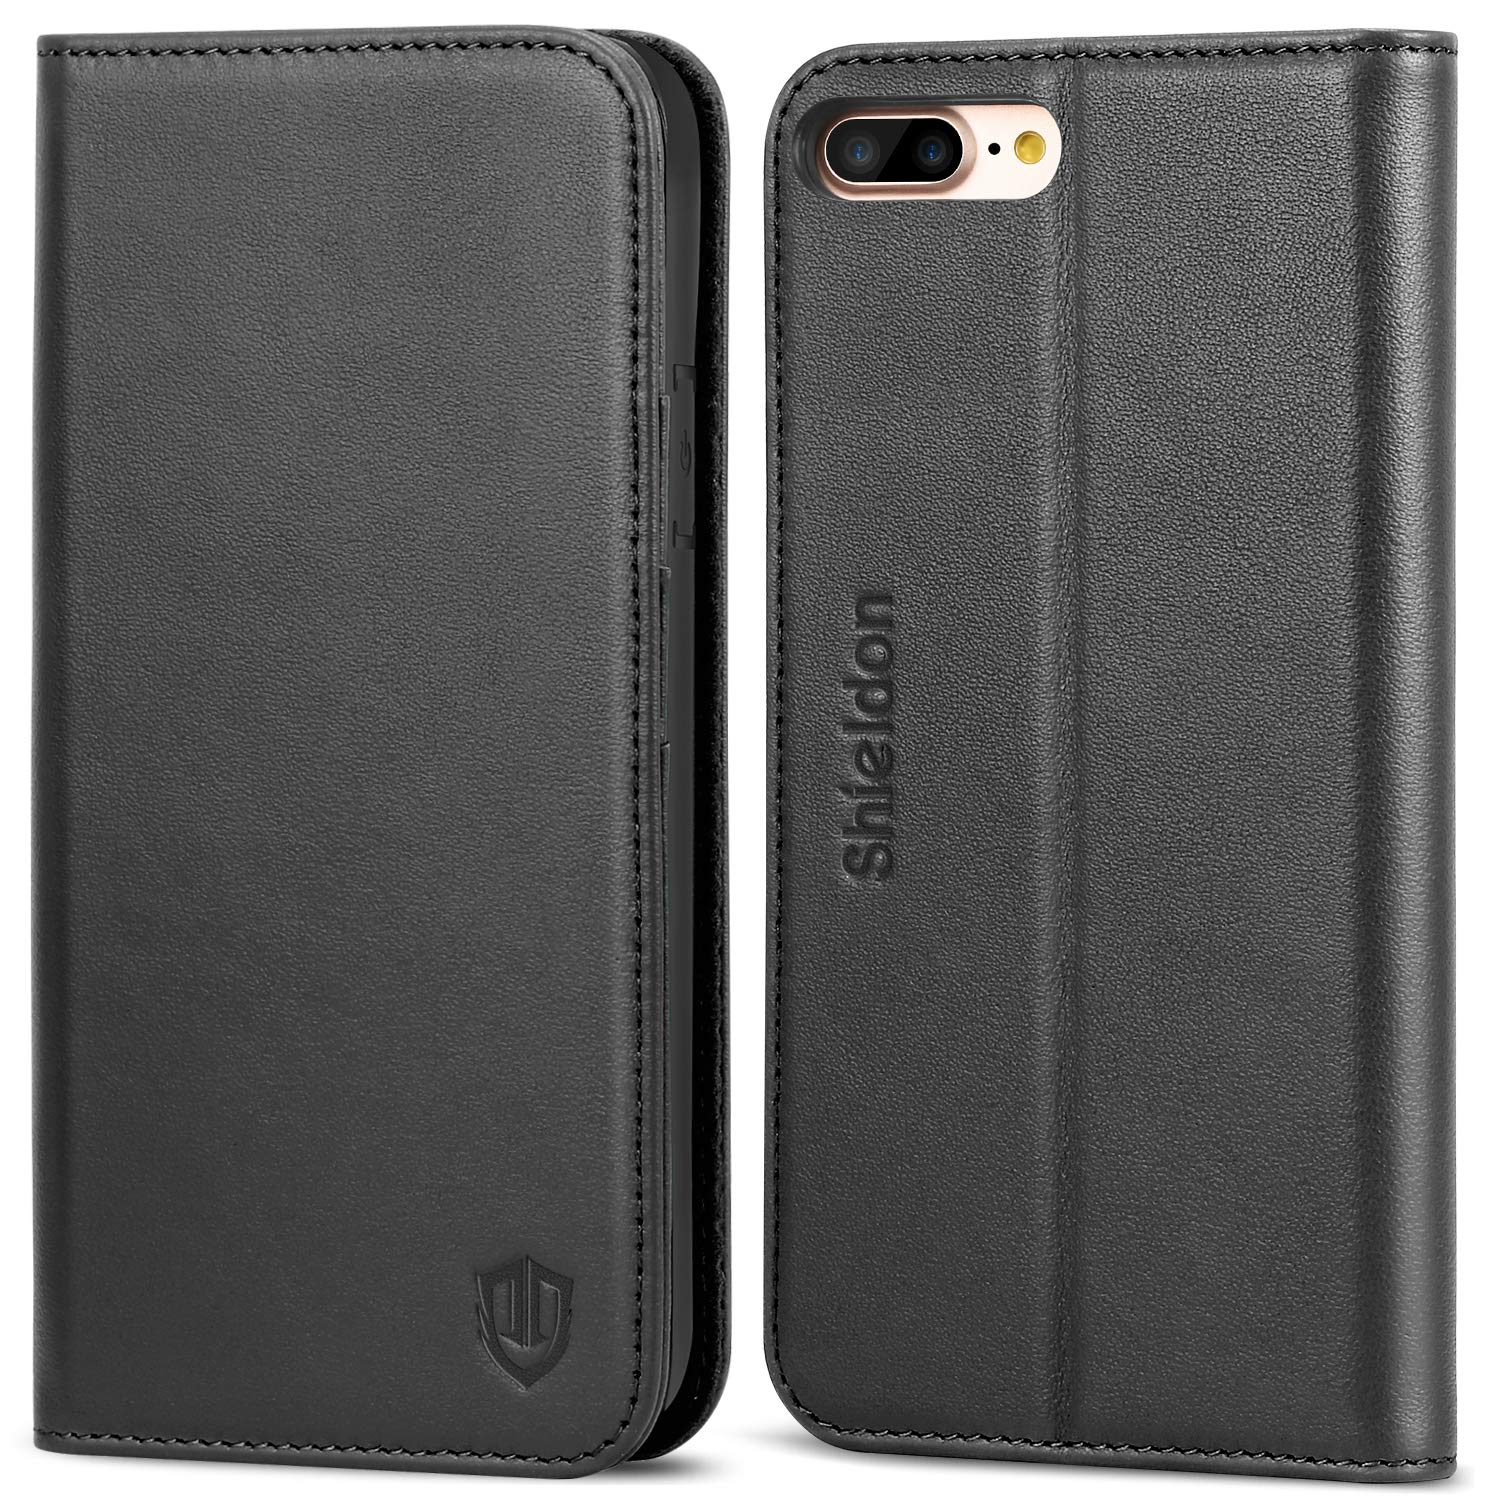 SHIELDON Genuine Leather iPhone 8 Plus Wallet Case Book Flip Cover and [Credit Card Slot] Magnetic Closure Compatible with iPhone 8 Plus / 7 Plus - Black by SHIELDON